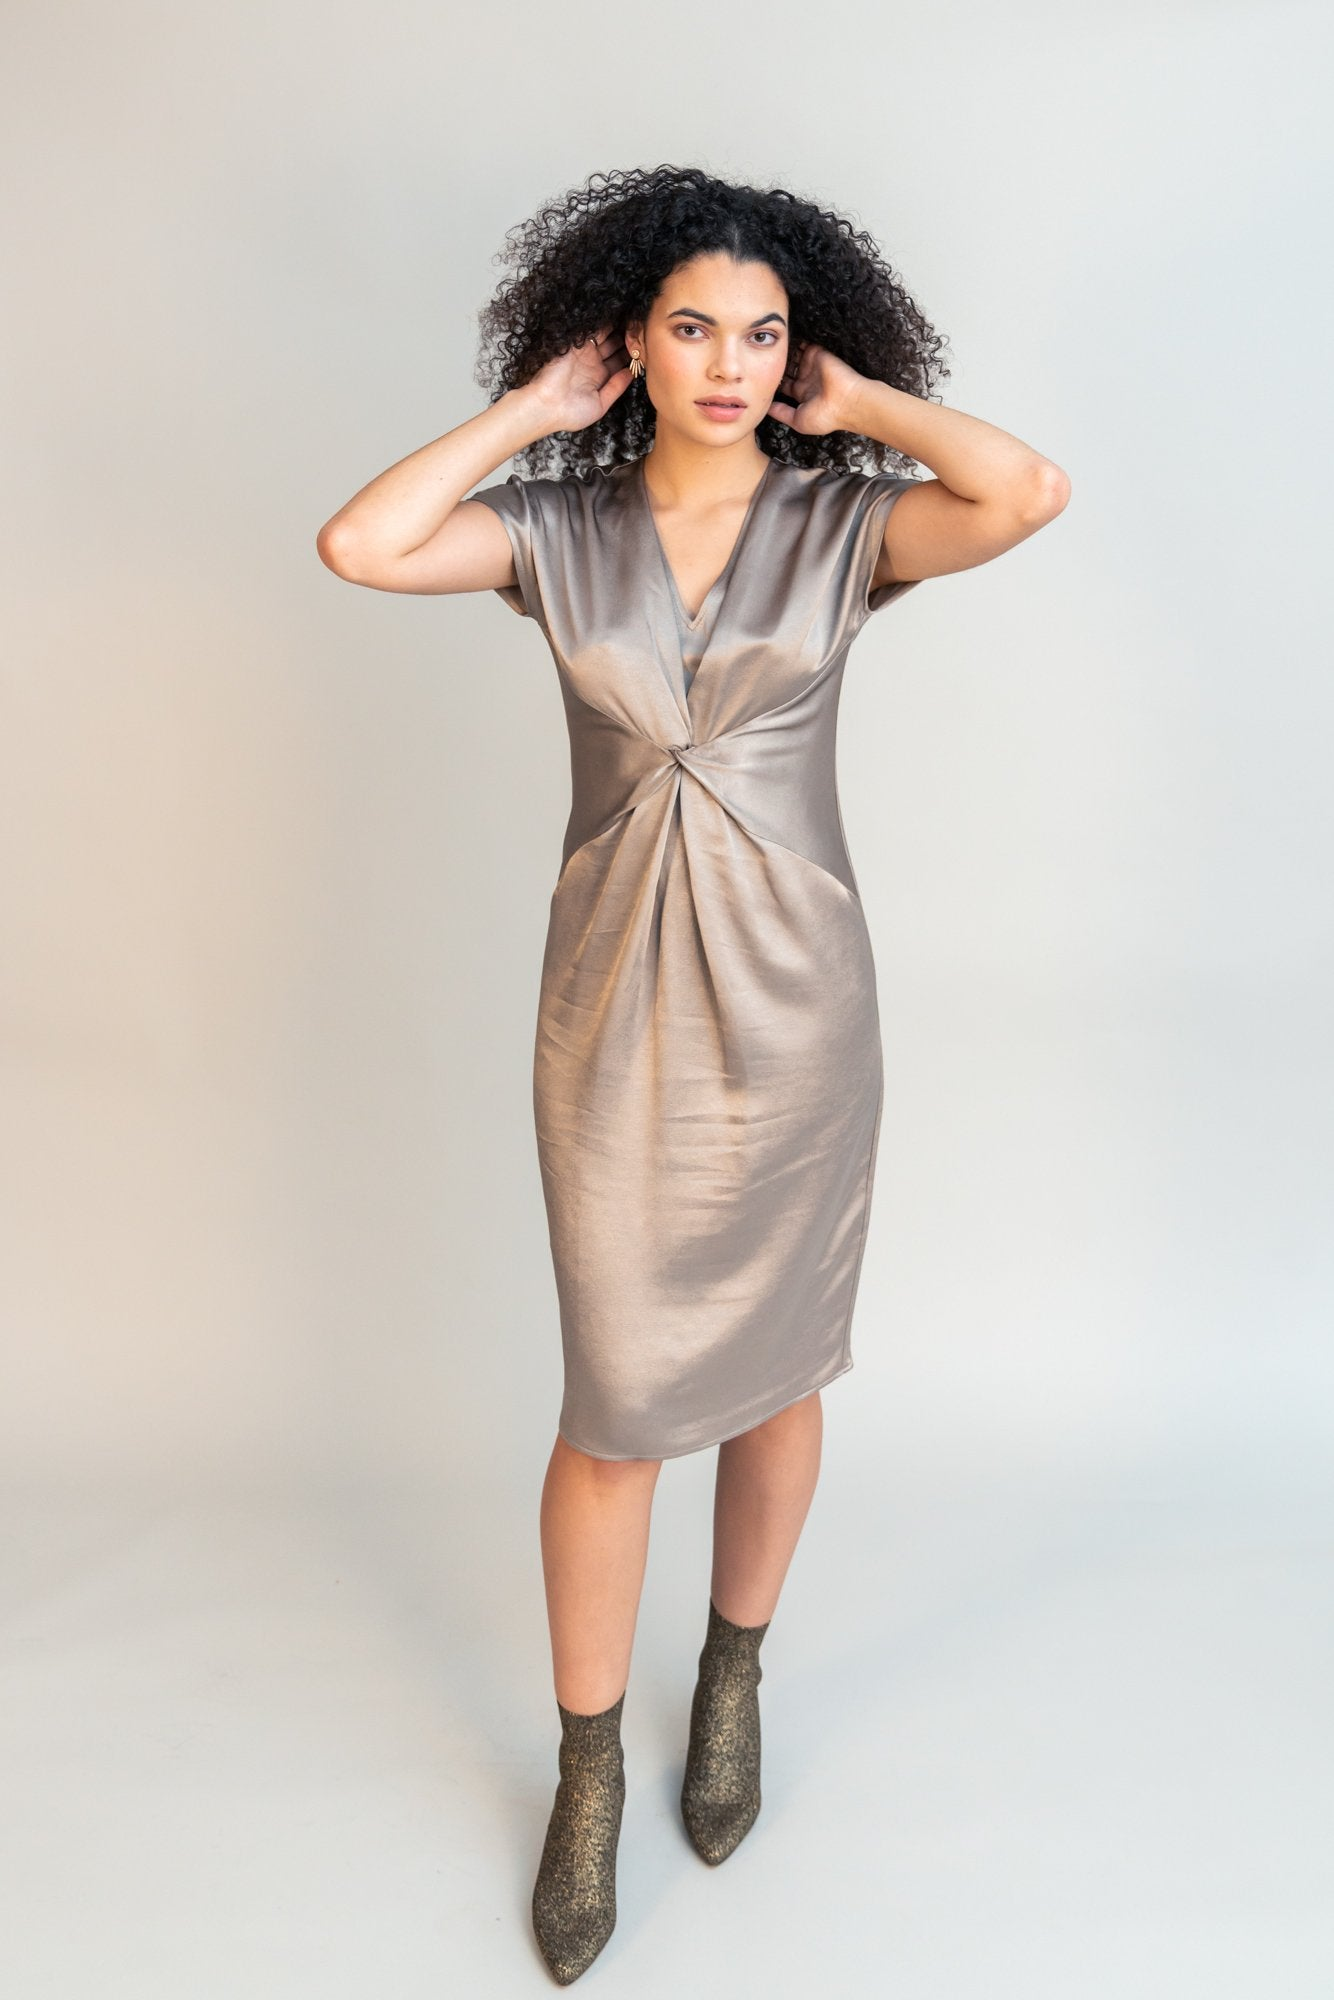 Obakki - Harlyn Dress -Clay